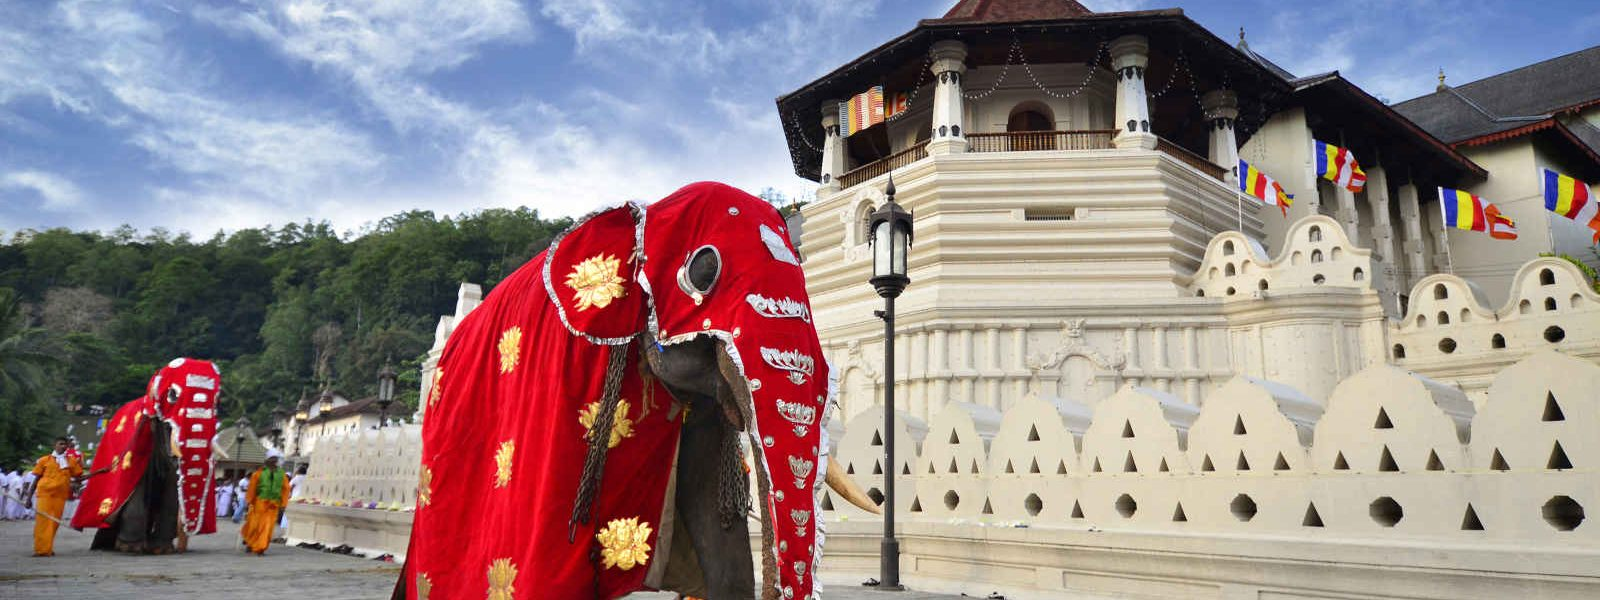 Temple, Elephants, Kandy, Sri Lank